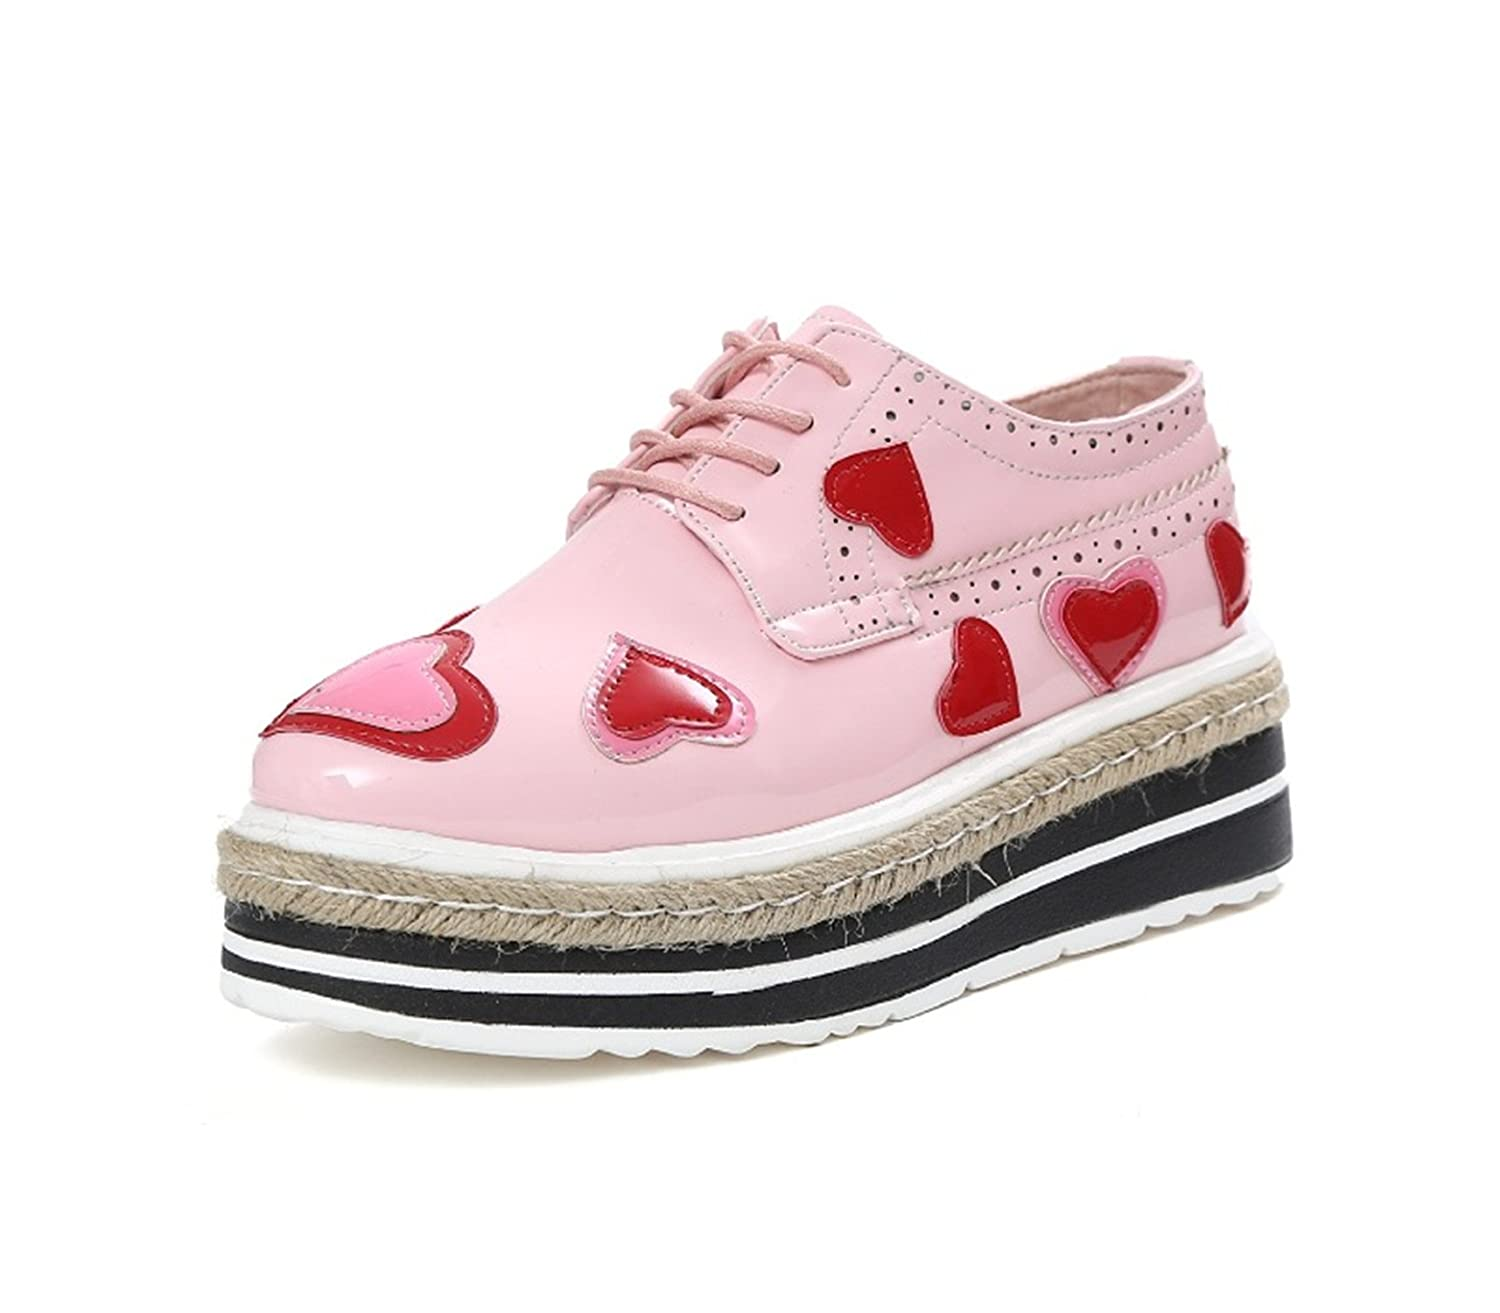 Baqijian Woman Pumps Women Shoes Wedges Heels Platform Casual Thick Sole Lace Up Heart Shaped Patent Leather Women Shoes